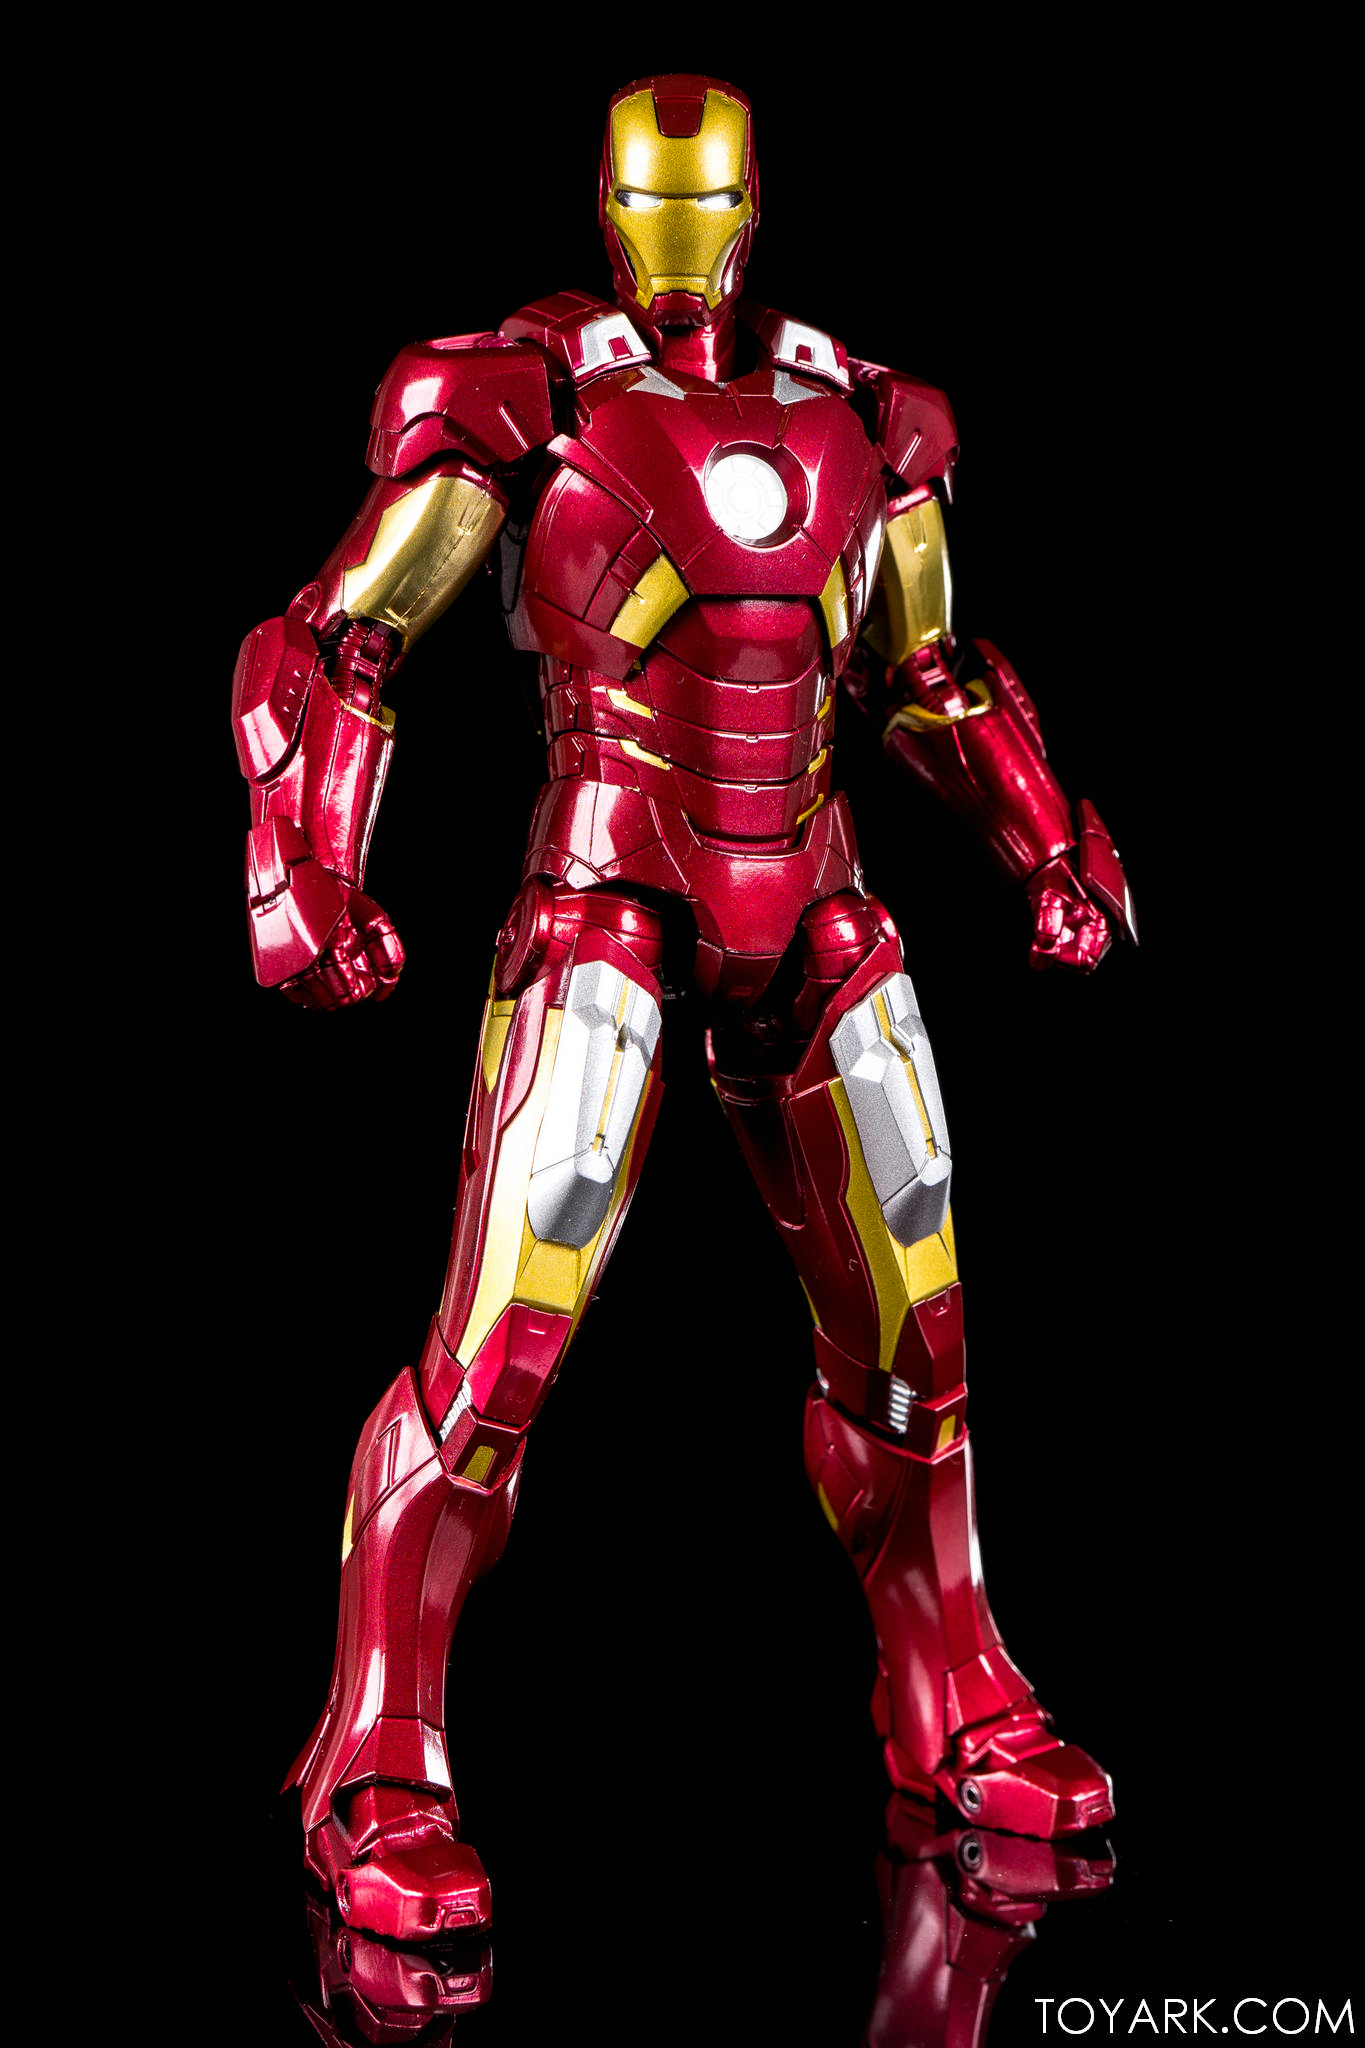 S.H. Figuarts Iron Man Mark VII In-Hand Gallery! – The Toyark  My Gifts, Games, & Toys